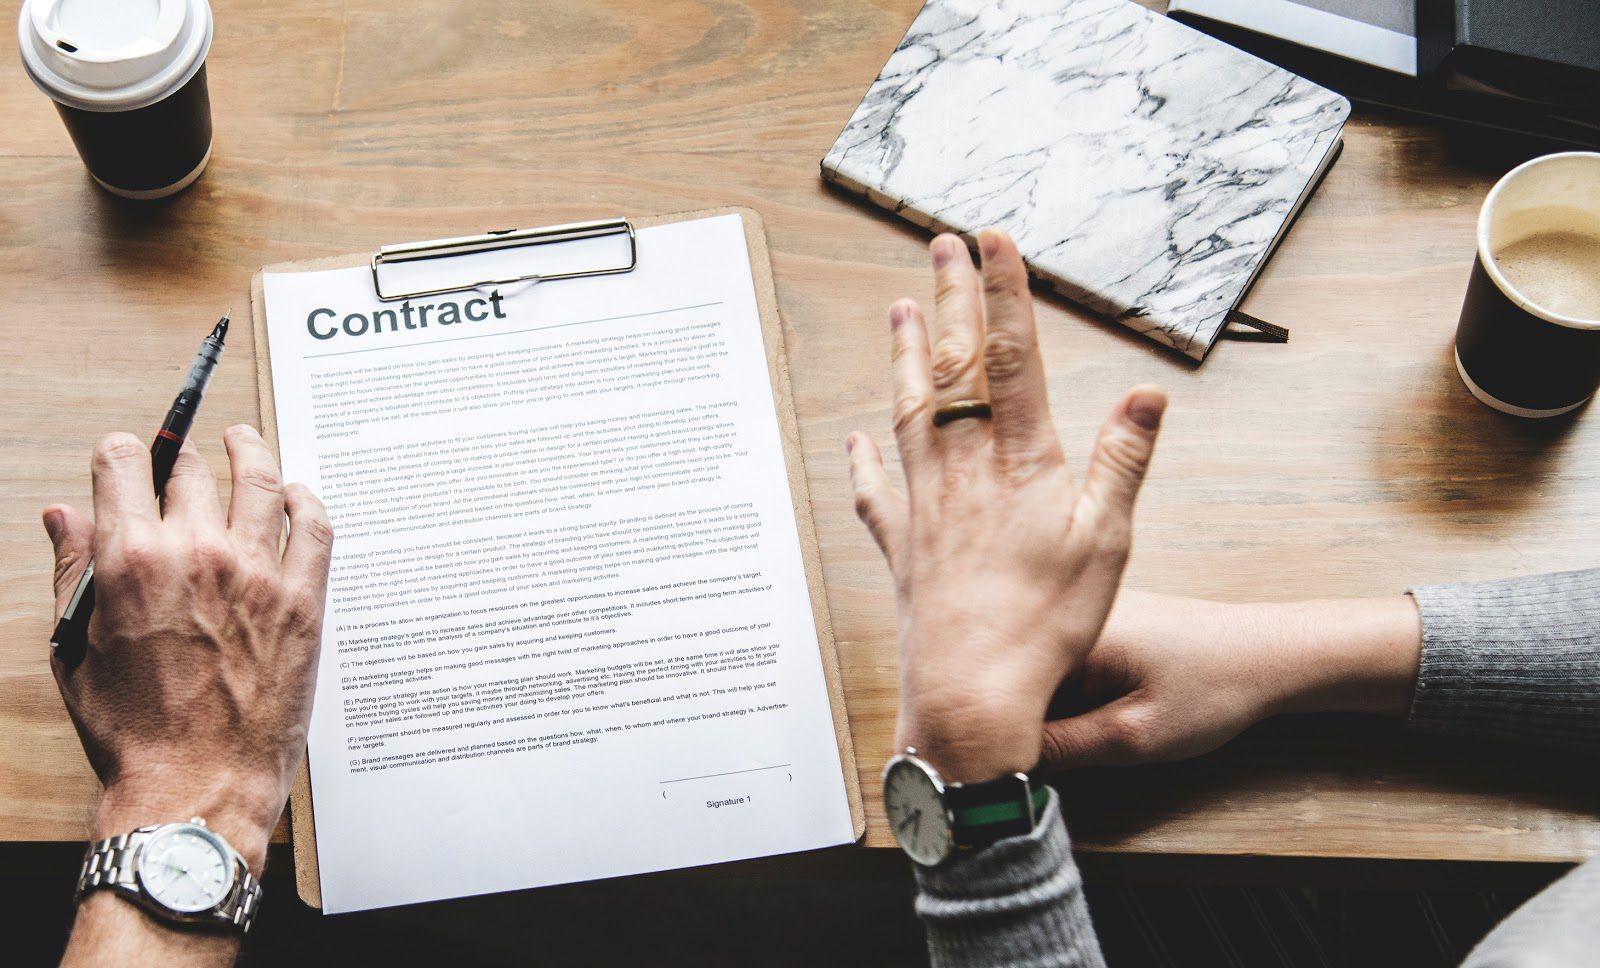 Contract variation is an essential part of procurement efforts, so it's no wonder that changes in public procurement rules can be so complex.